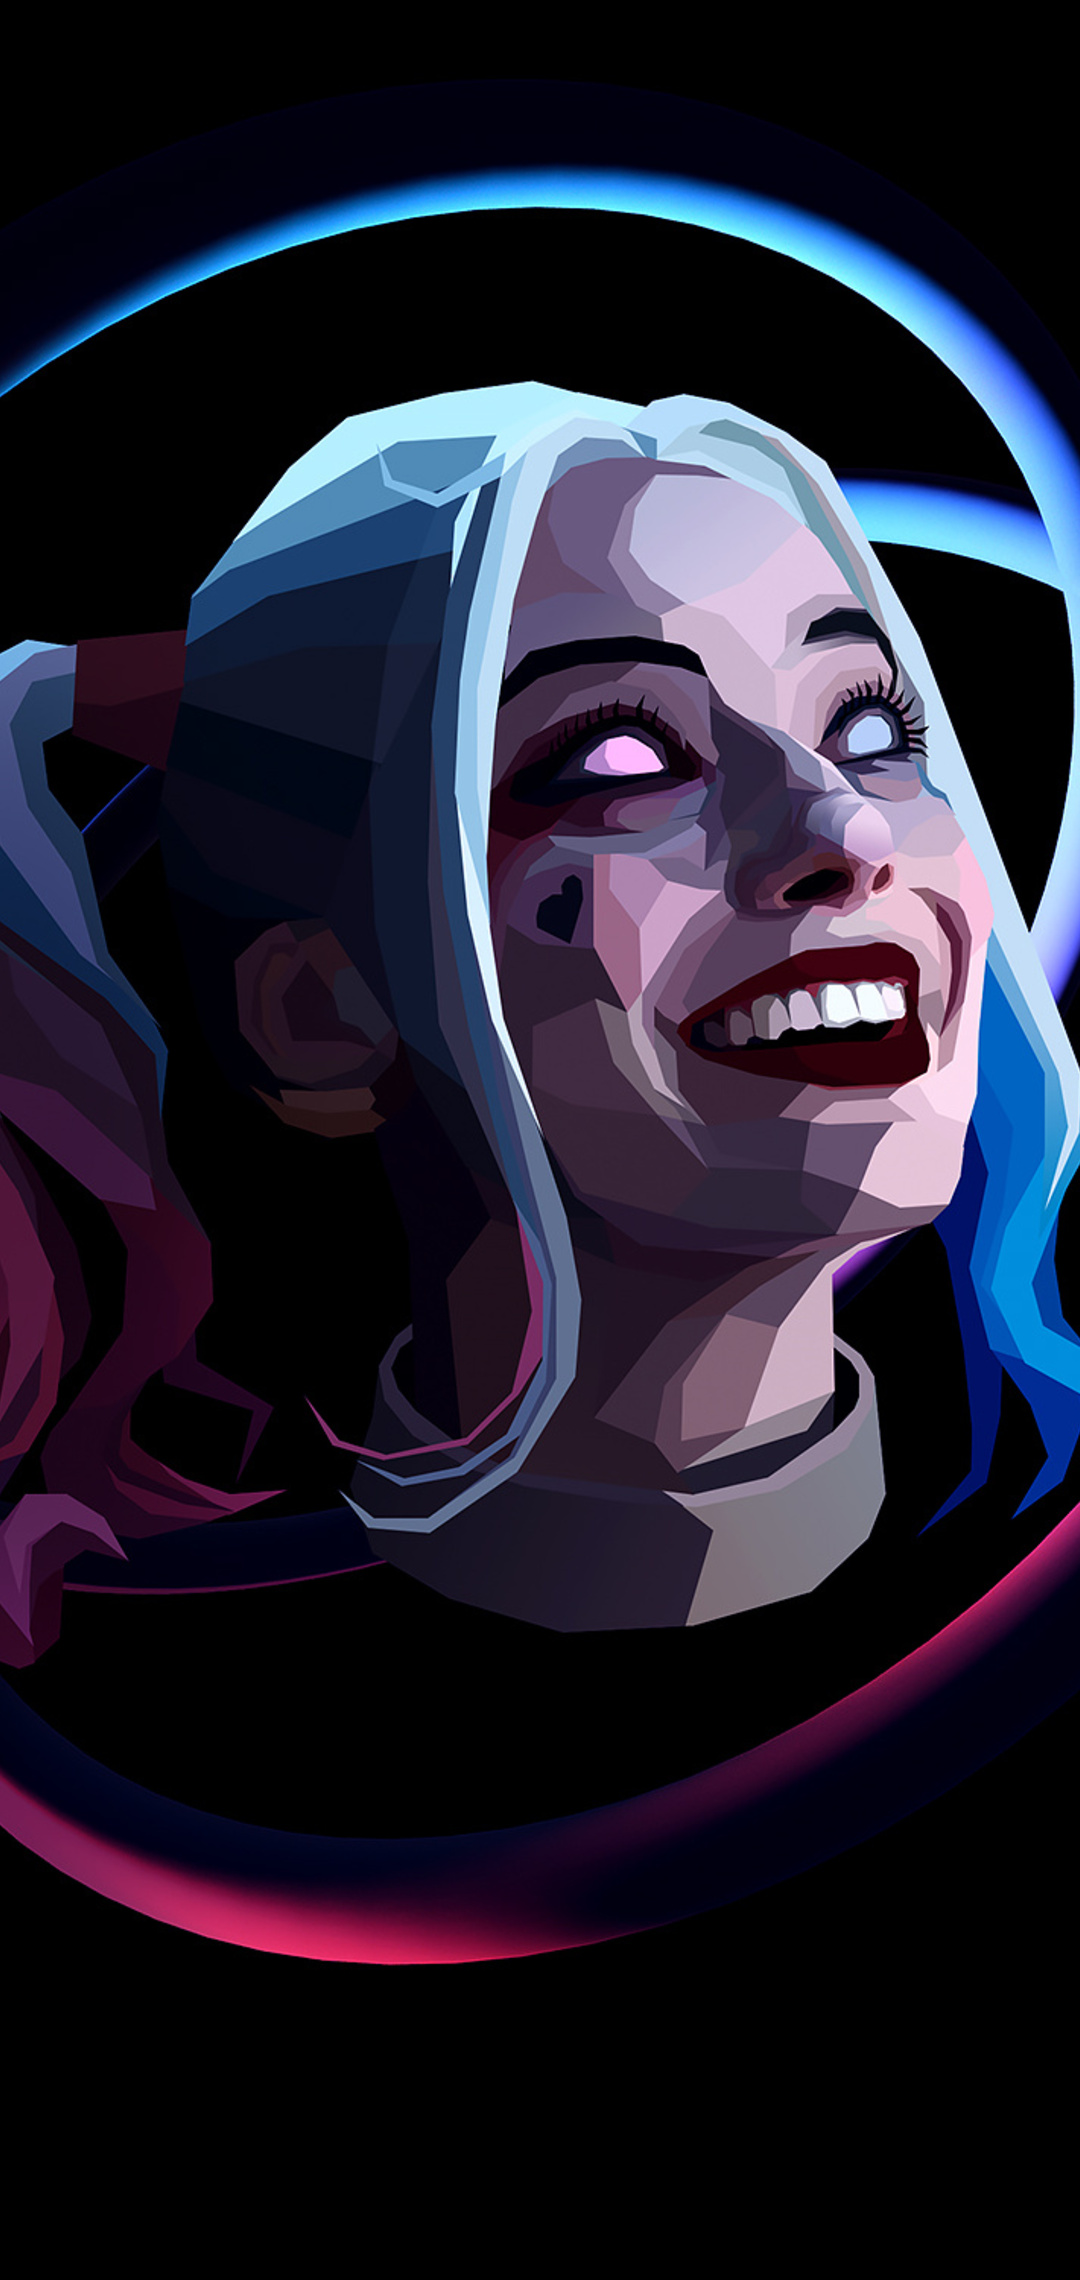 1080x2280 Harley Quinn Abstract Art One Plus 6 Huawei P20 Honor View